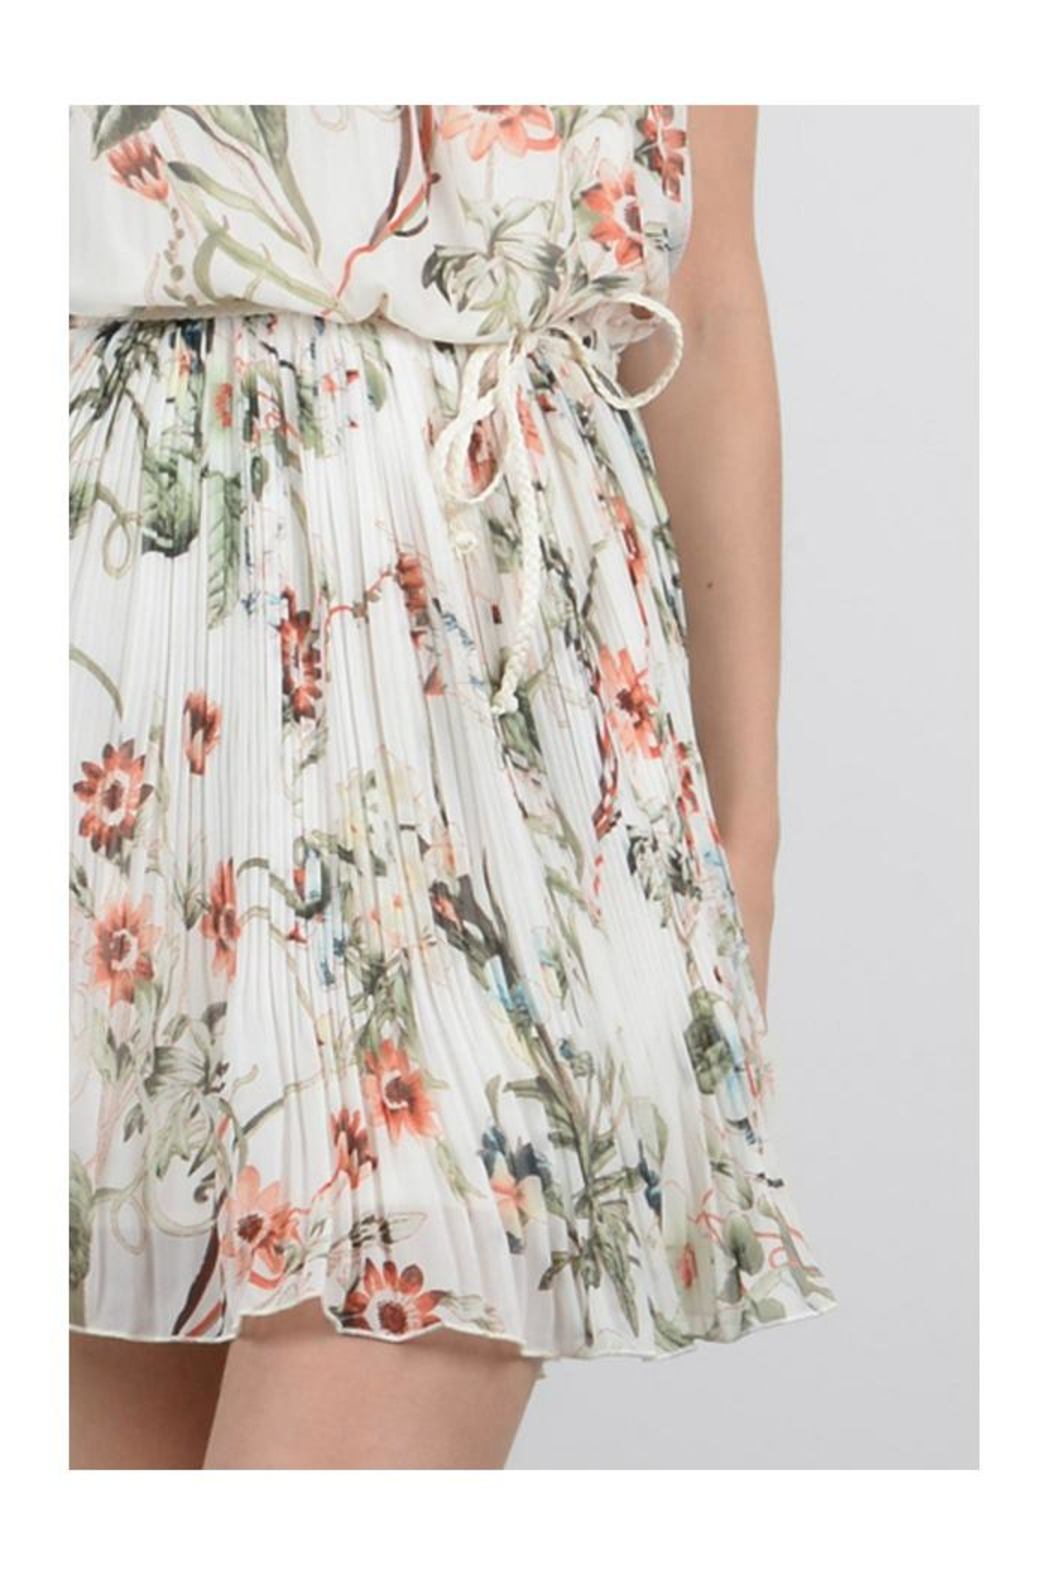 Molly Bracken Floral Sun Dress - Back Cropped Image